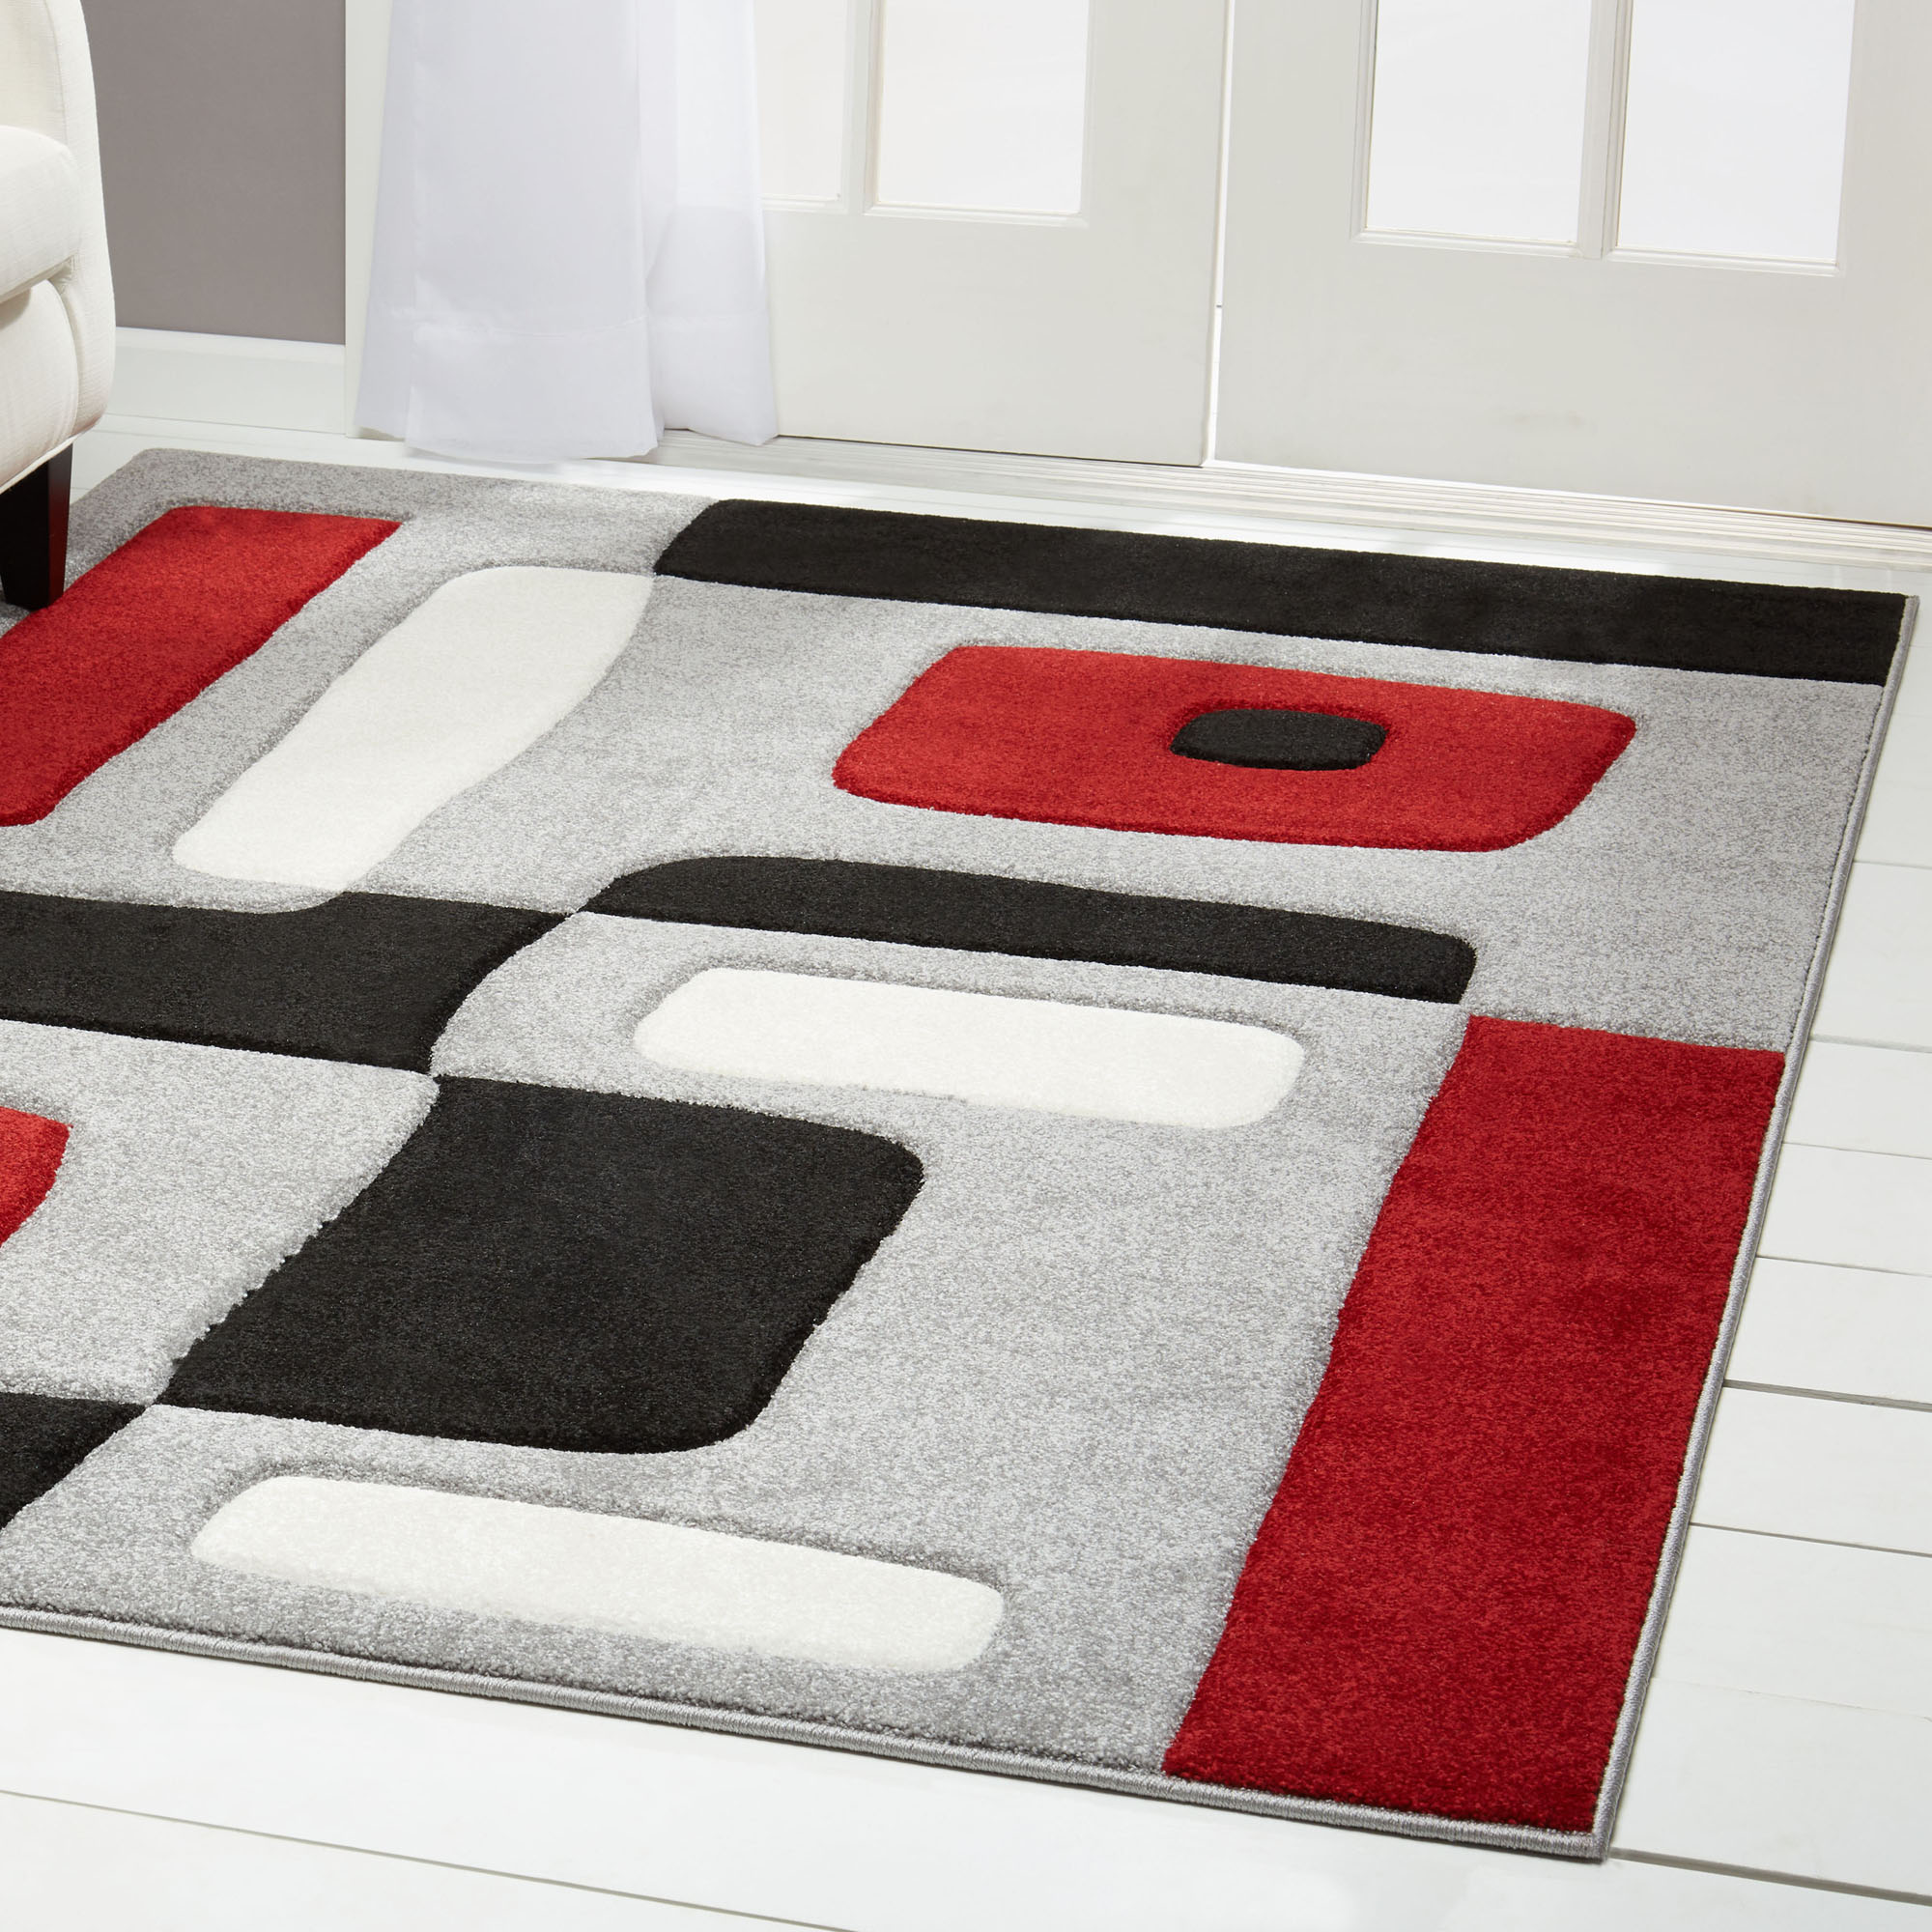 Black Red Hand Carved Area Rug Modern Geometric Shapes